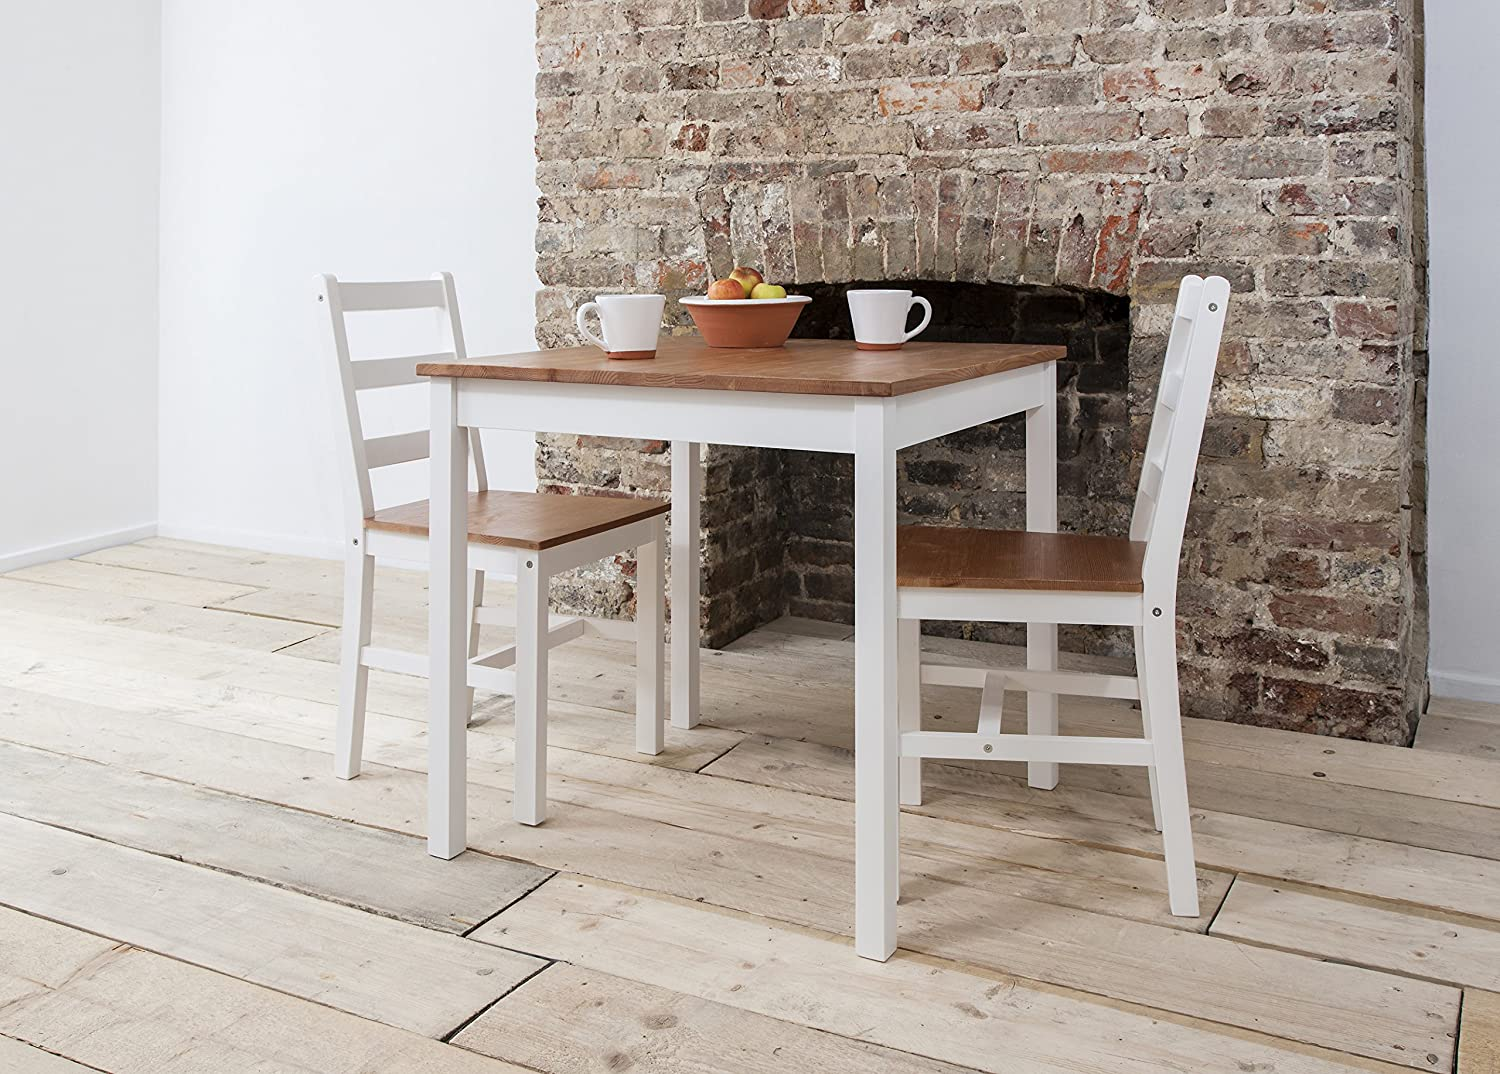 dining table and 2 chairs dining set bistro white natural pine amazoncouk kitchen home - 2 Seater Dining Table Set